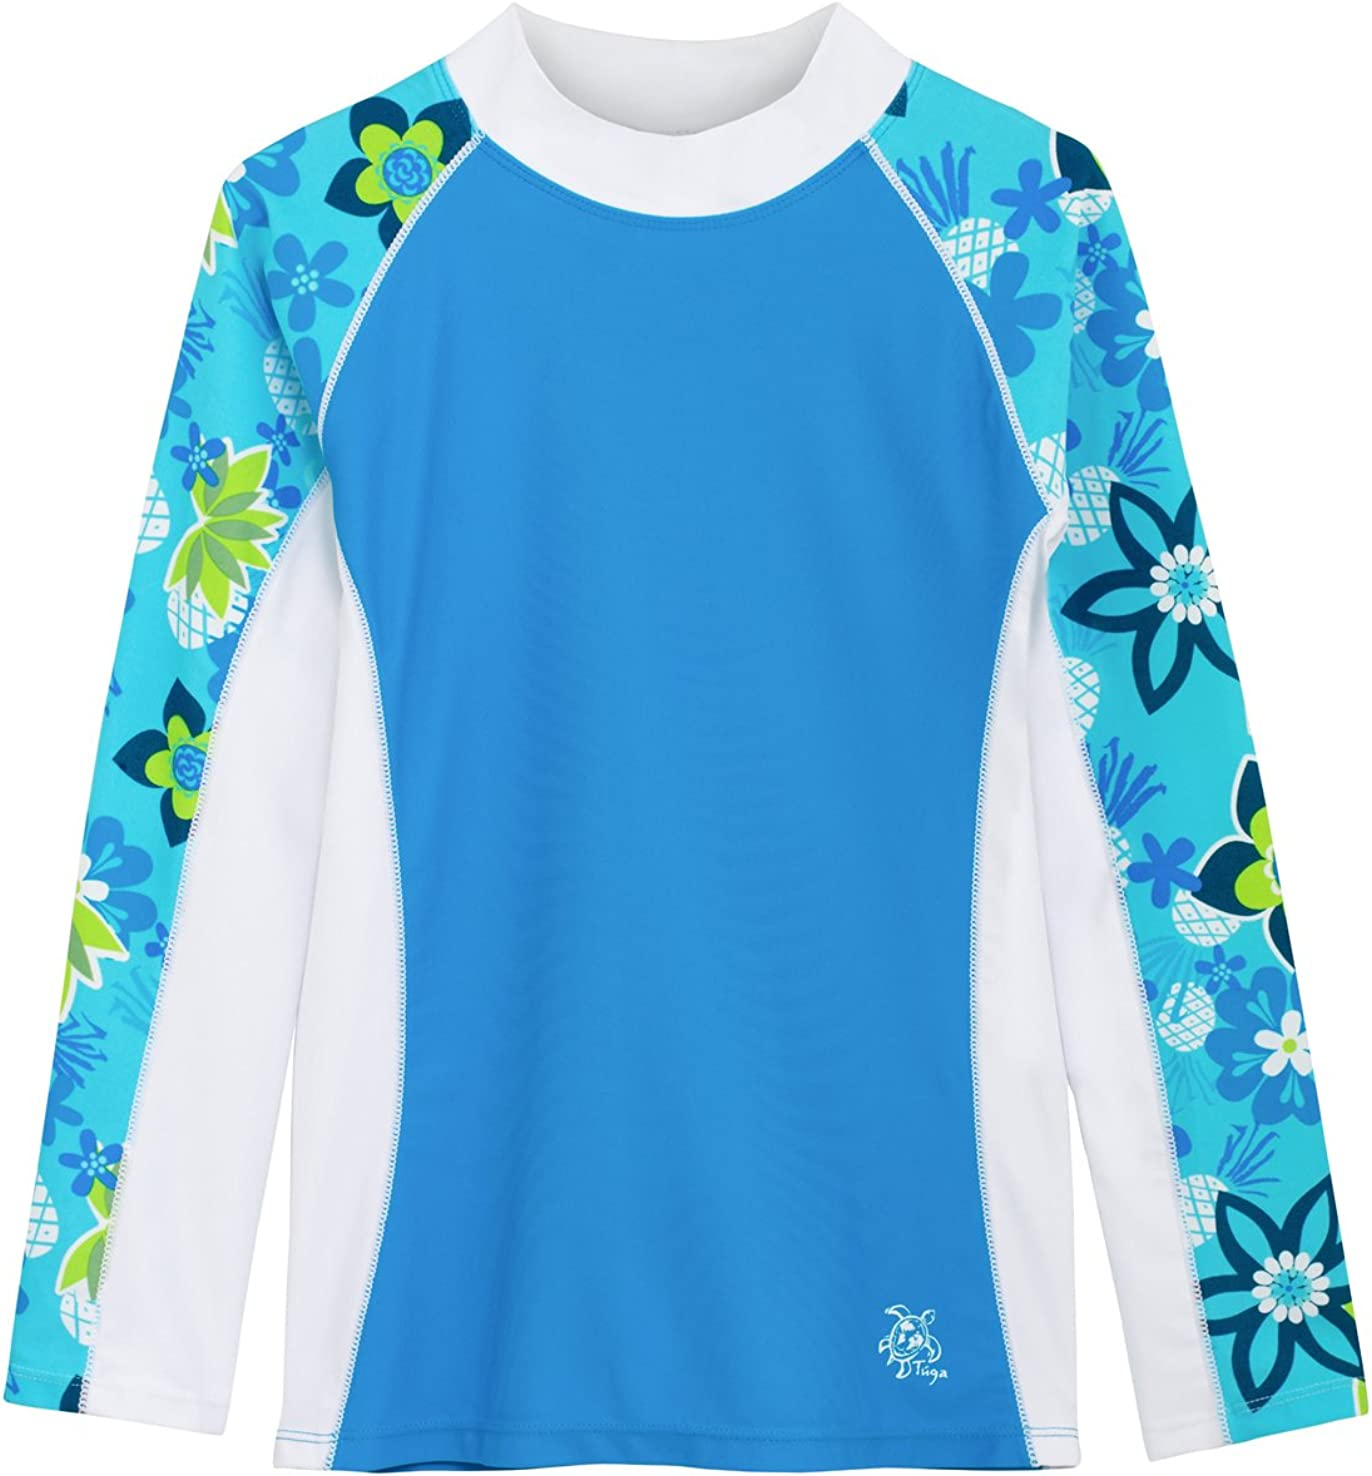 Tuga Girls Long Sleeve All items in the Ranking TOP15 store Rash Guards Years 50+ UPF Prote 1-14 Sun